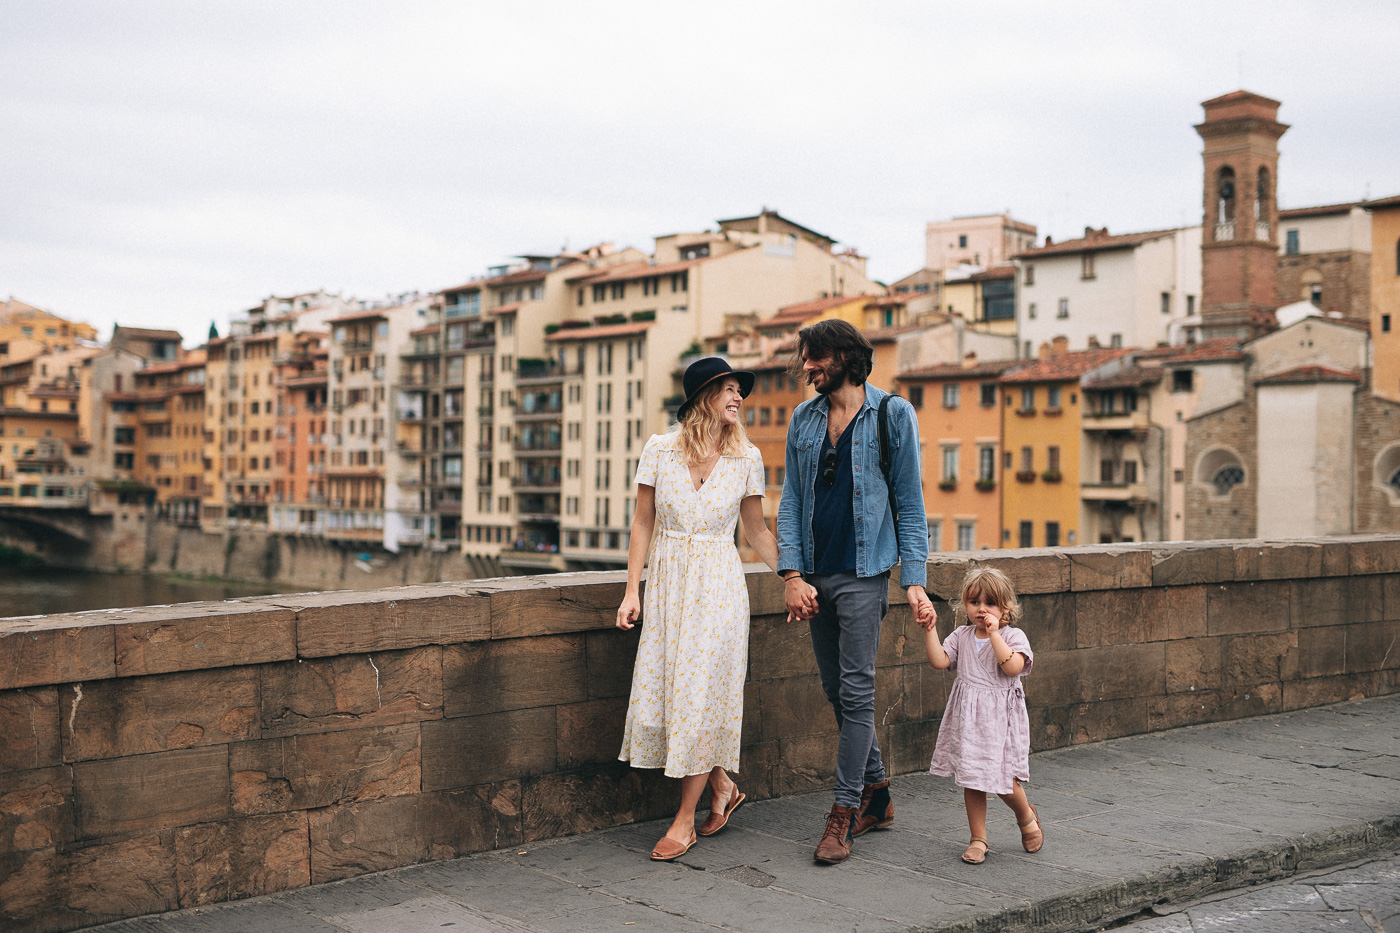 Italian Family walking on the Ponte Vecchio, Firenze